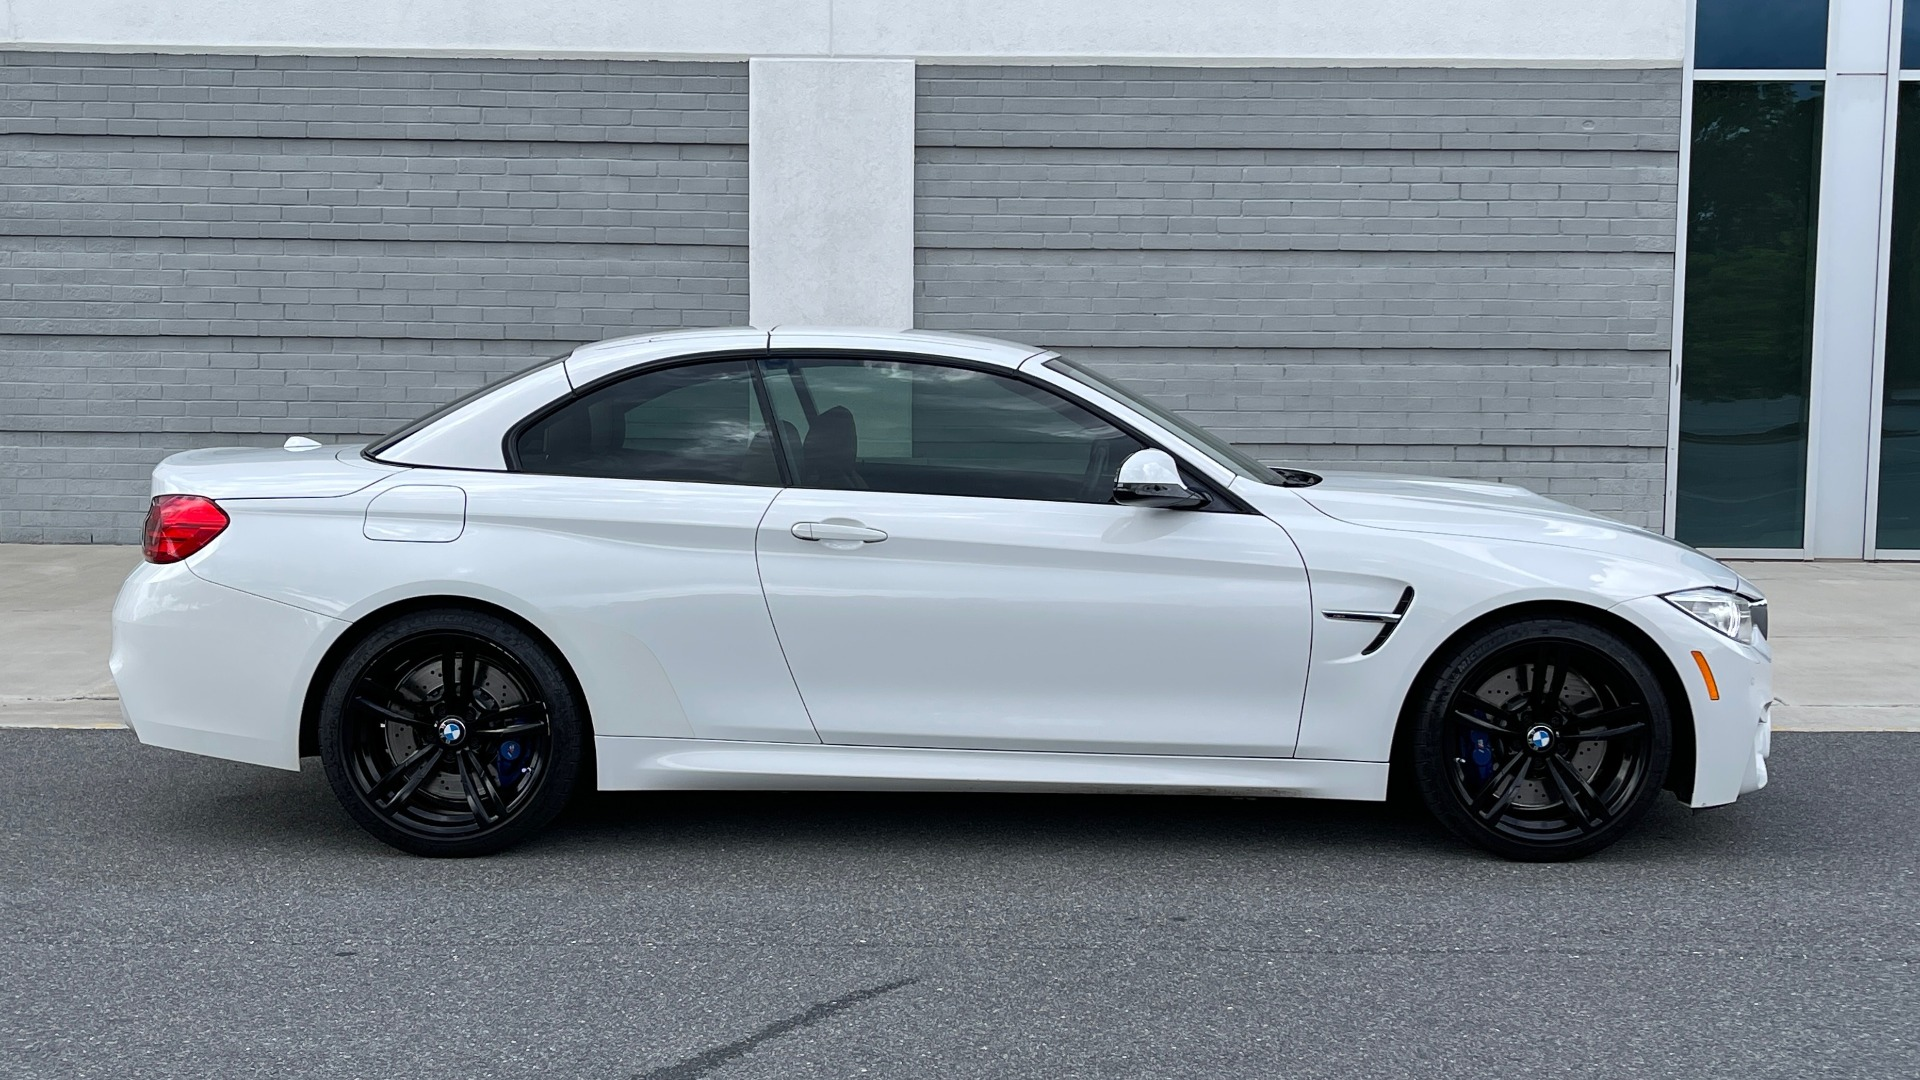 Used 2016 BMW M4 CONVERTIBLE 3.0L / 7-SPD AUTO / EXECUTIVE / ADAPT M SUSP / REARVIEW for sale $53,999 at Formula Imports in Charlotte NC 28227 38